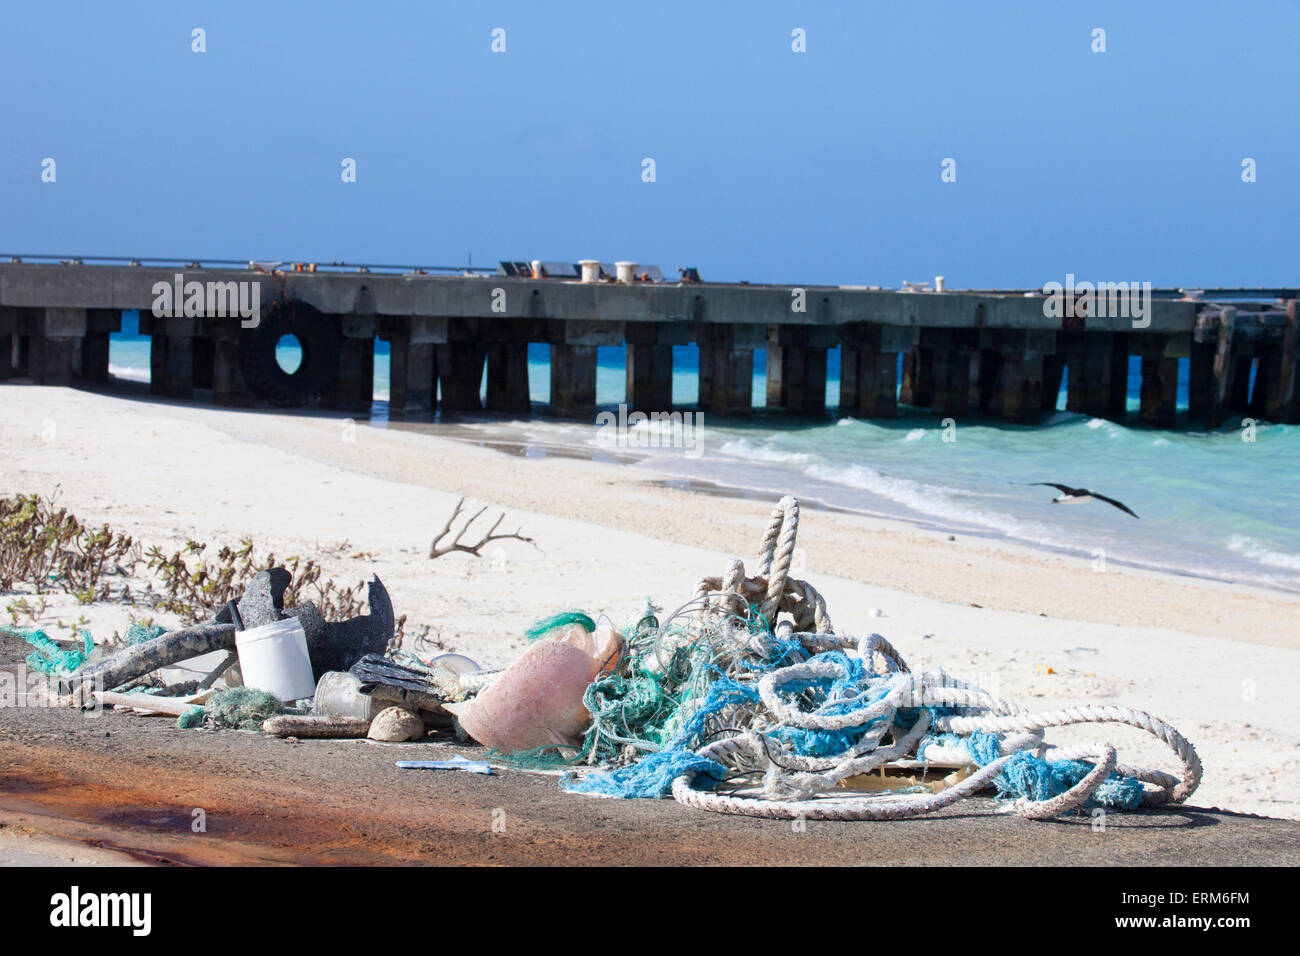 Plastic marine debris, ropes and nets collected from beach for shipping off-island and disposal. - Stock Image